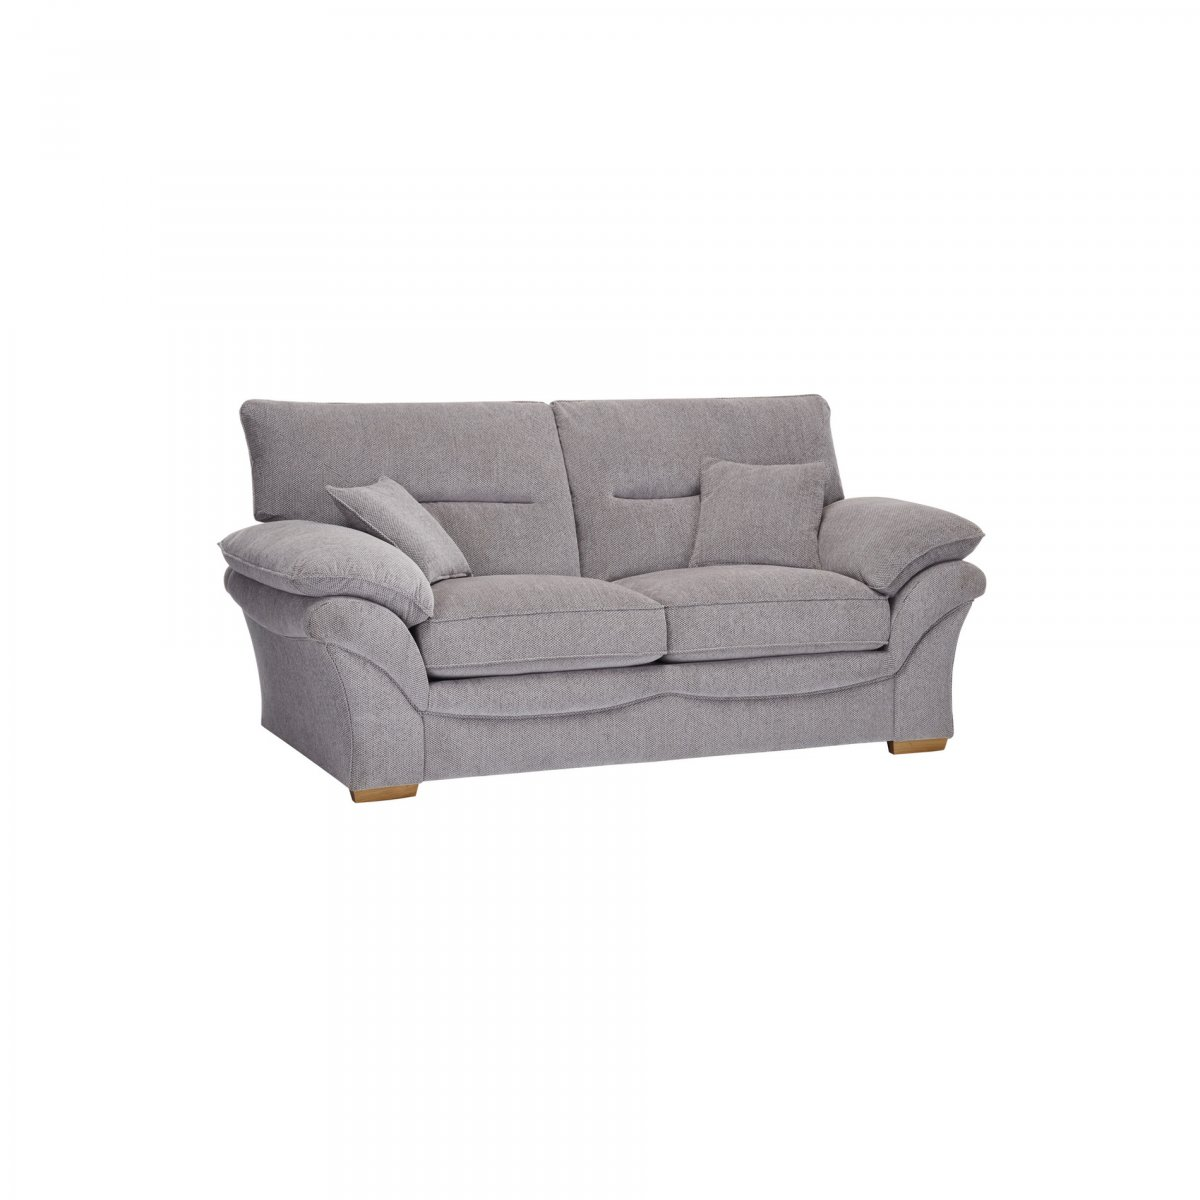 2 seater sofa bed size buoyant fairfield chloe in logan fabric grey